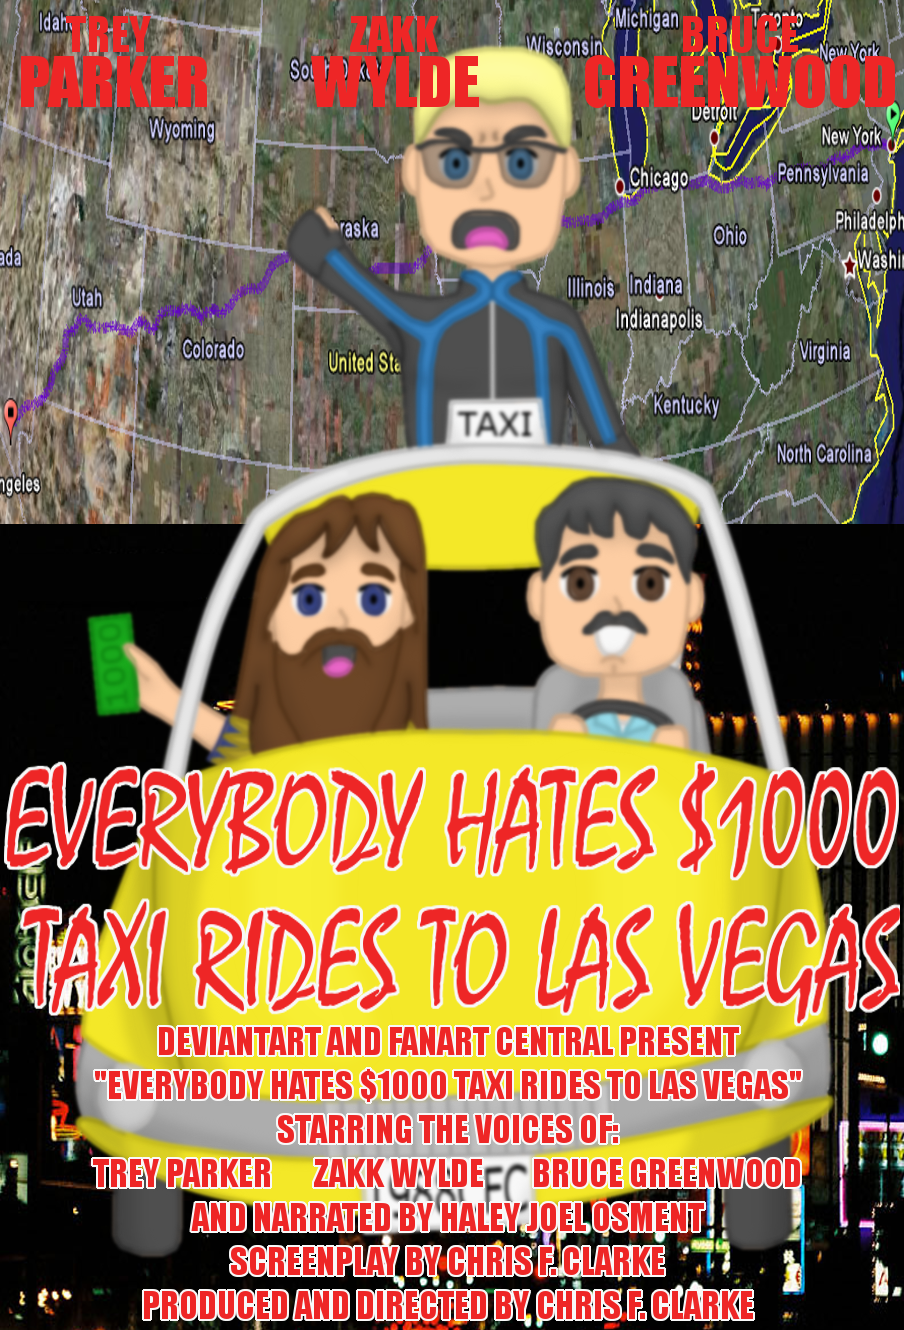 Everybody Hates Thousand-Dollar Taxi Rides to Las Vegas by Cclarke